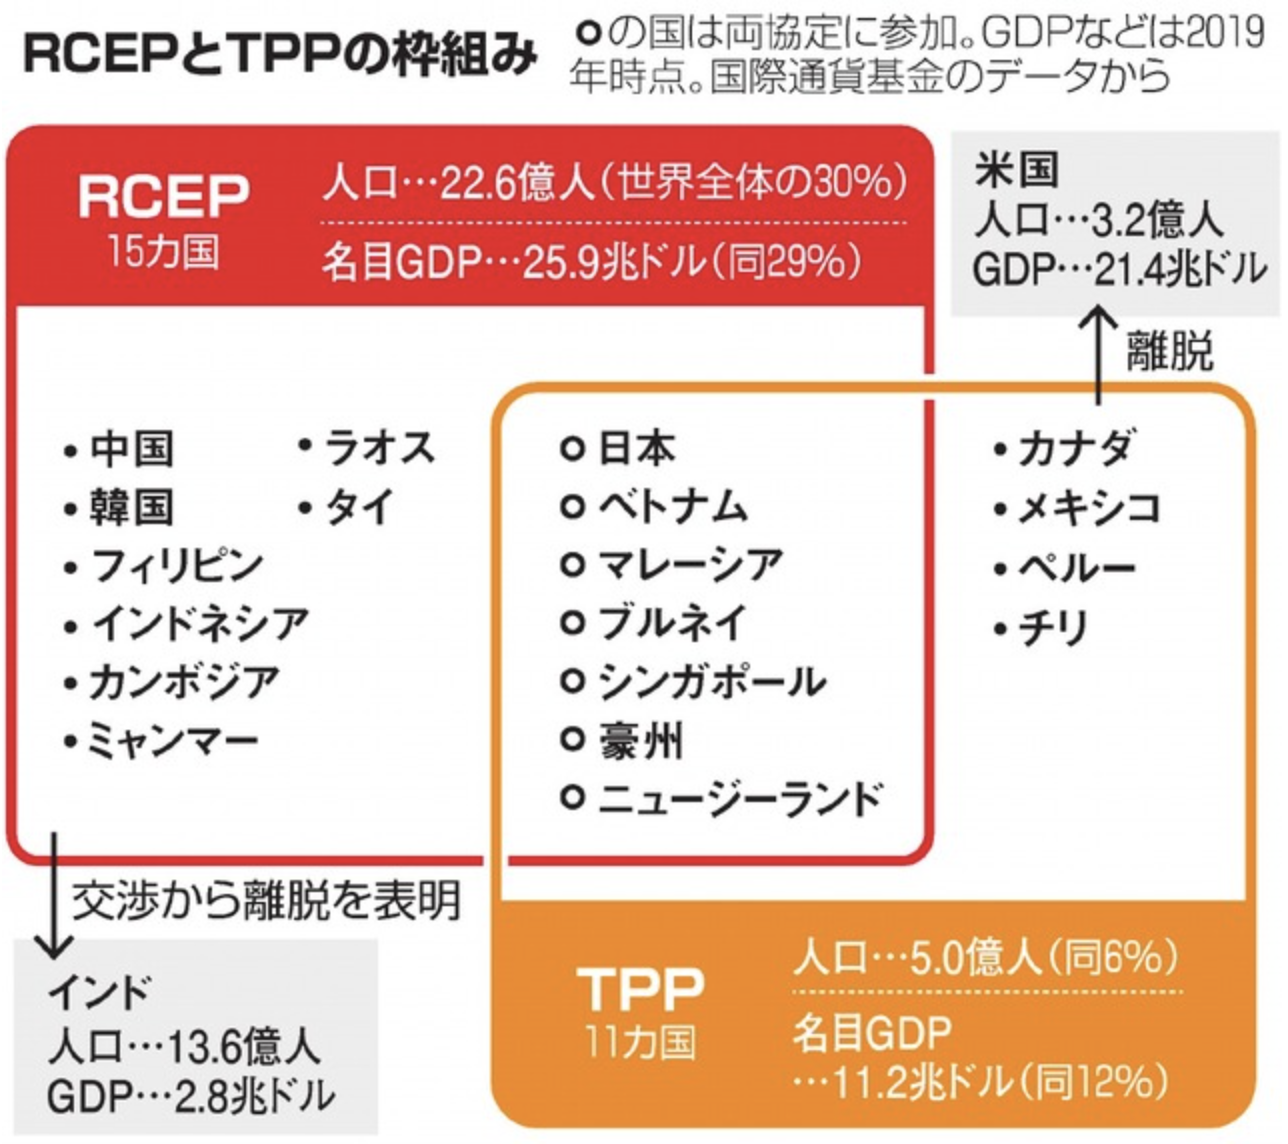 RCEPとTPPの枠組み(引用:https://www.asahi.com/articles/ASNCH7JN8NCHULFA00K.html)